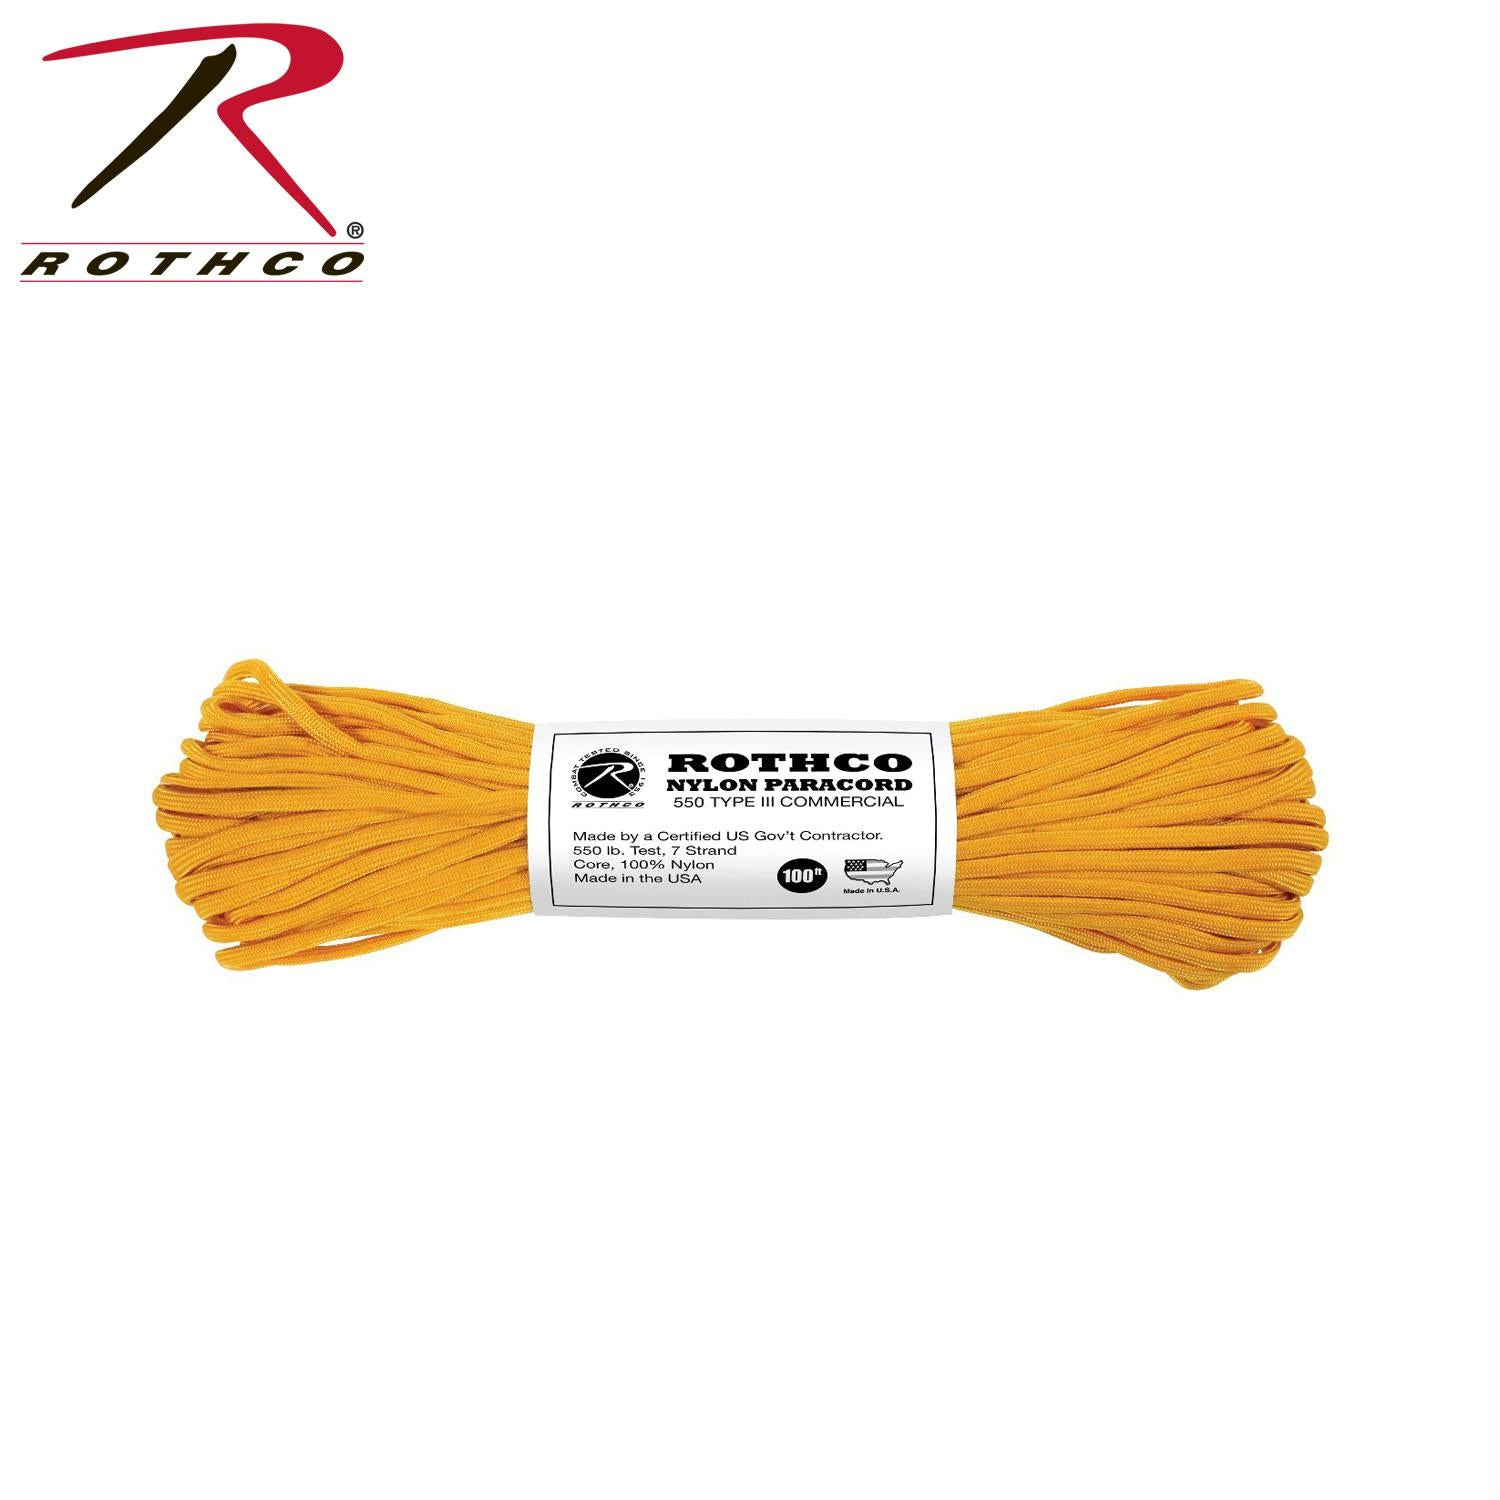 Rothco Nylon Paracord Type III 550 LB 100FT - Gold